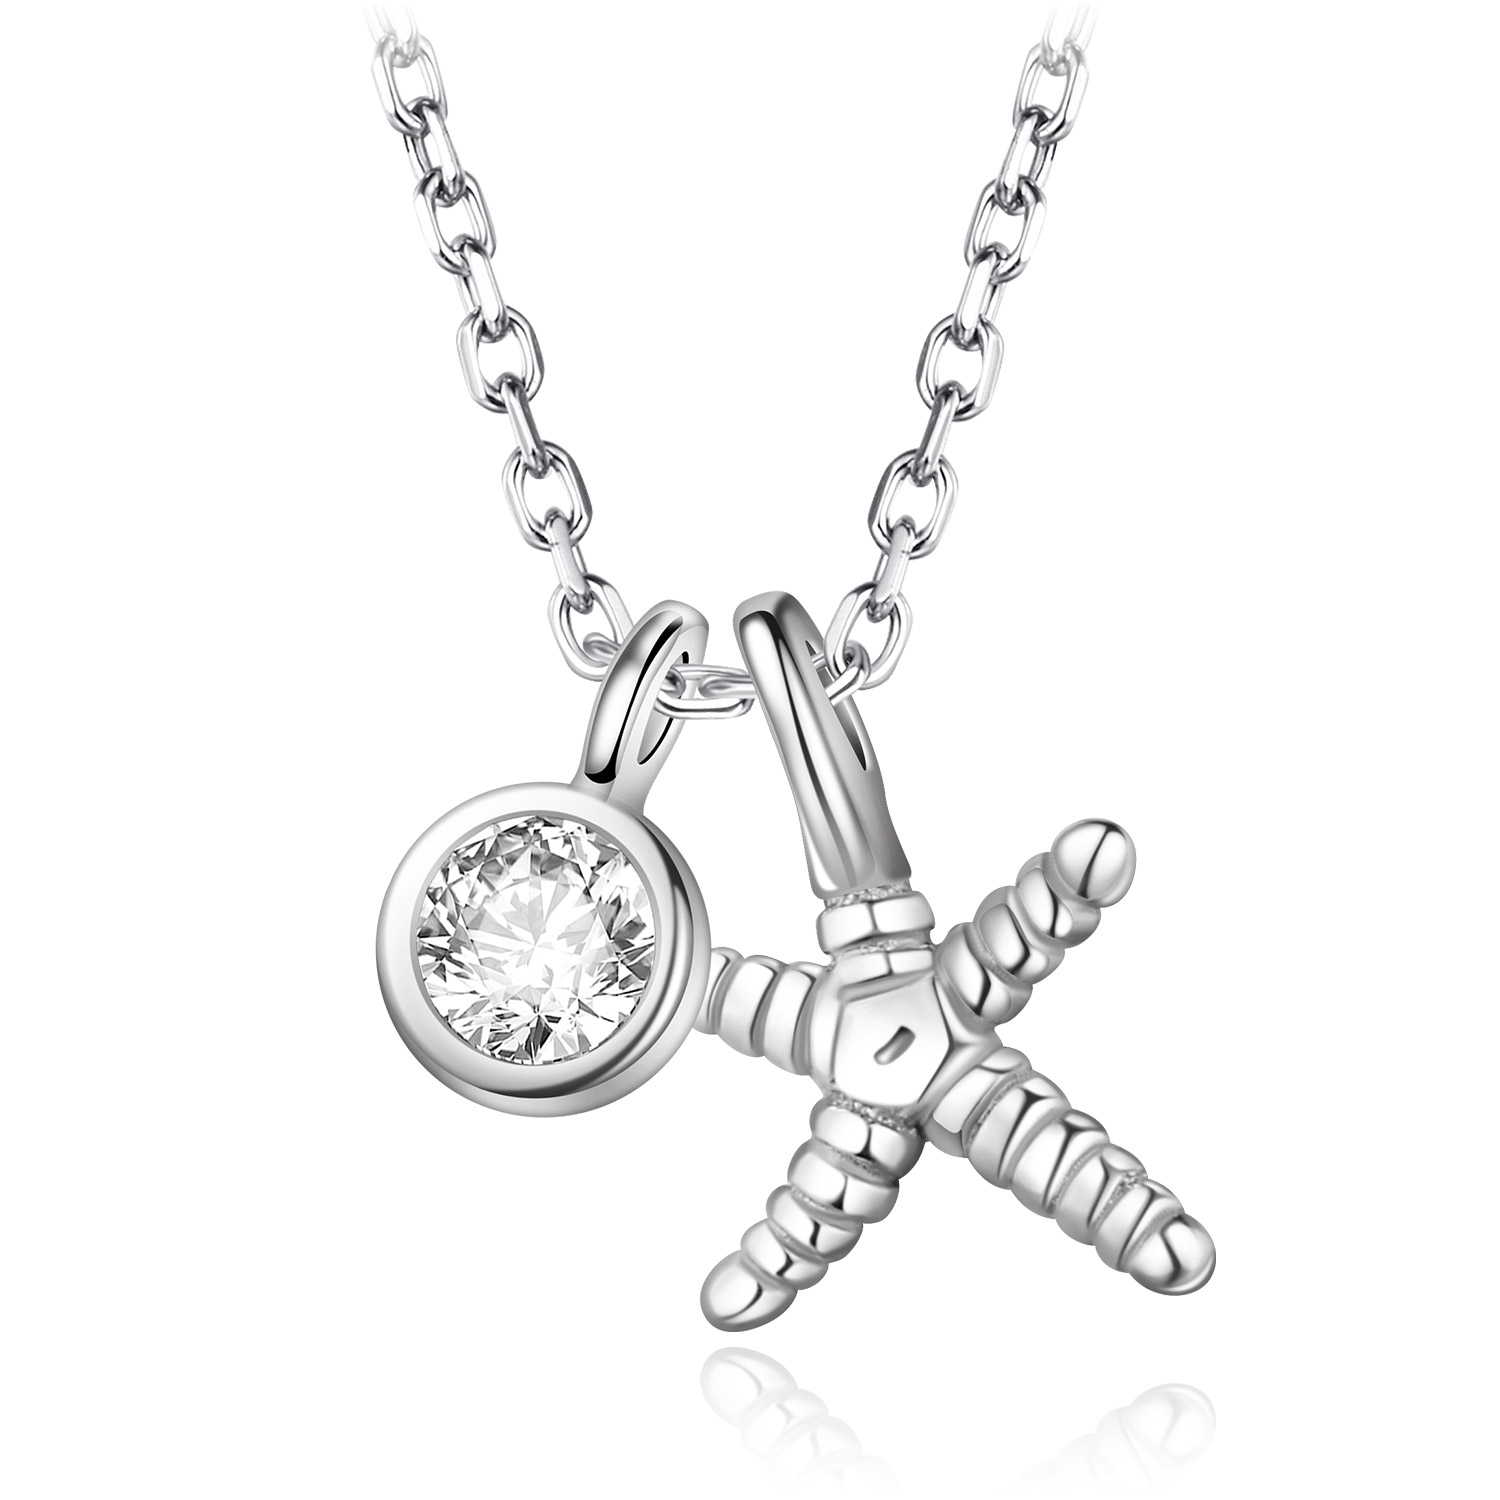 925 Sterling Silver Starfish Pendant Necklaces For Women Link Chain Choker Necklace Gift Fashion Jewelry collares de moda 2020 image